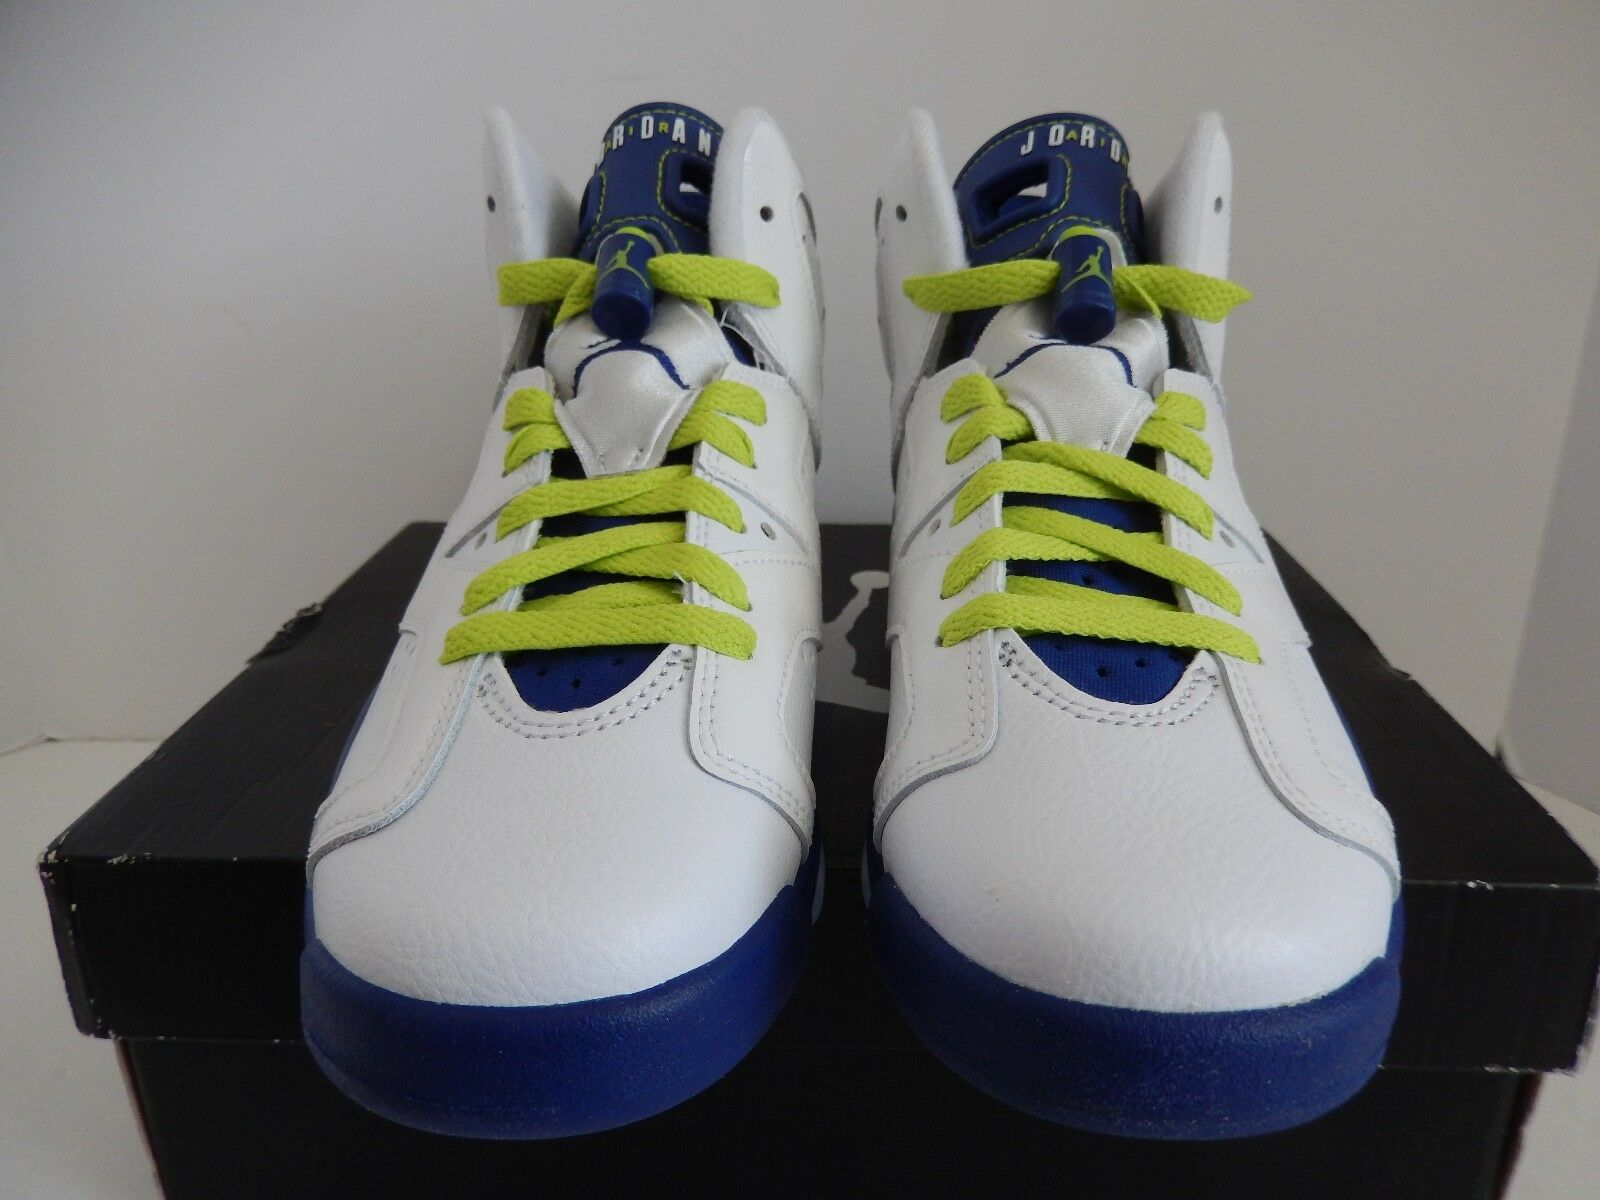 NIKE NIKE NIKE AIR JORDAN 6 RETRO GG SEATTLE SEAHAWKS SZ 4.5Y-WOMENS SZ 6 26ab9e